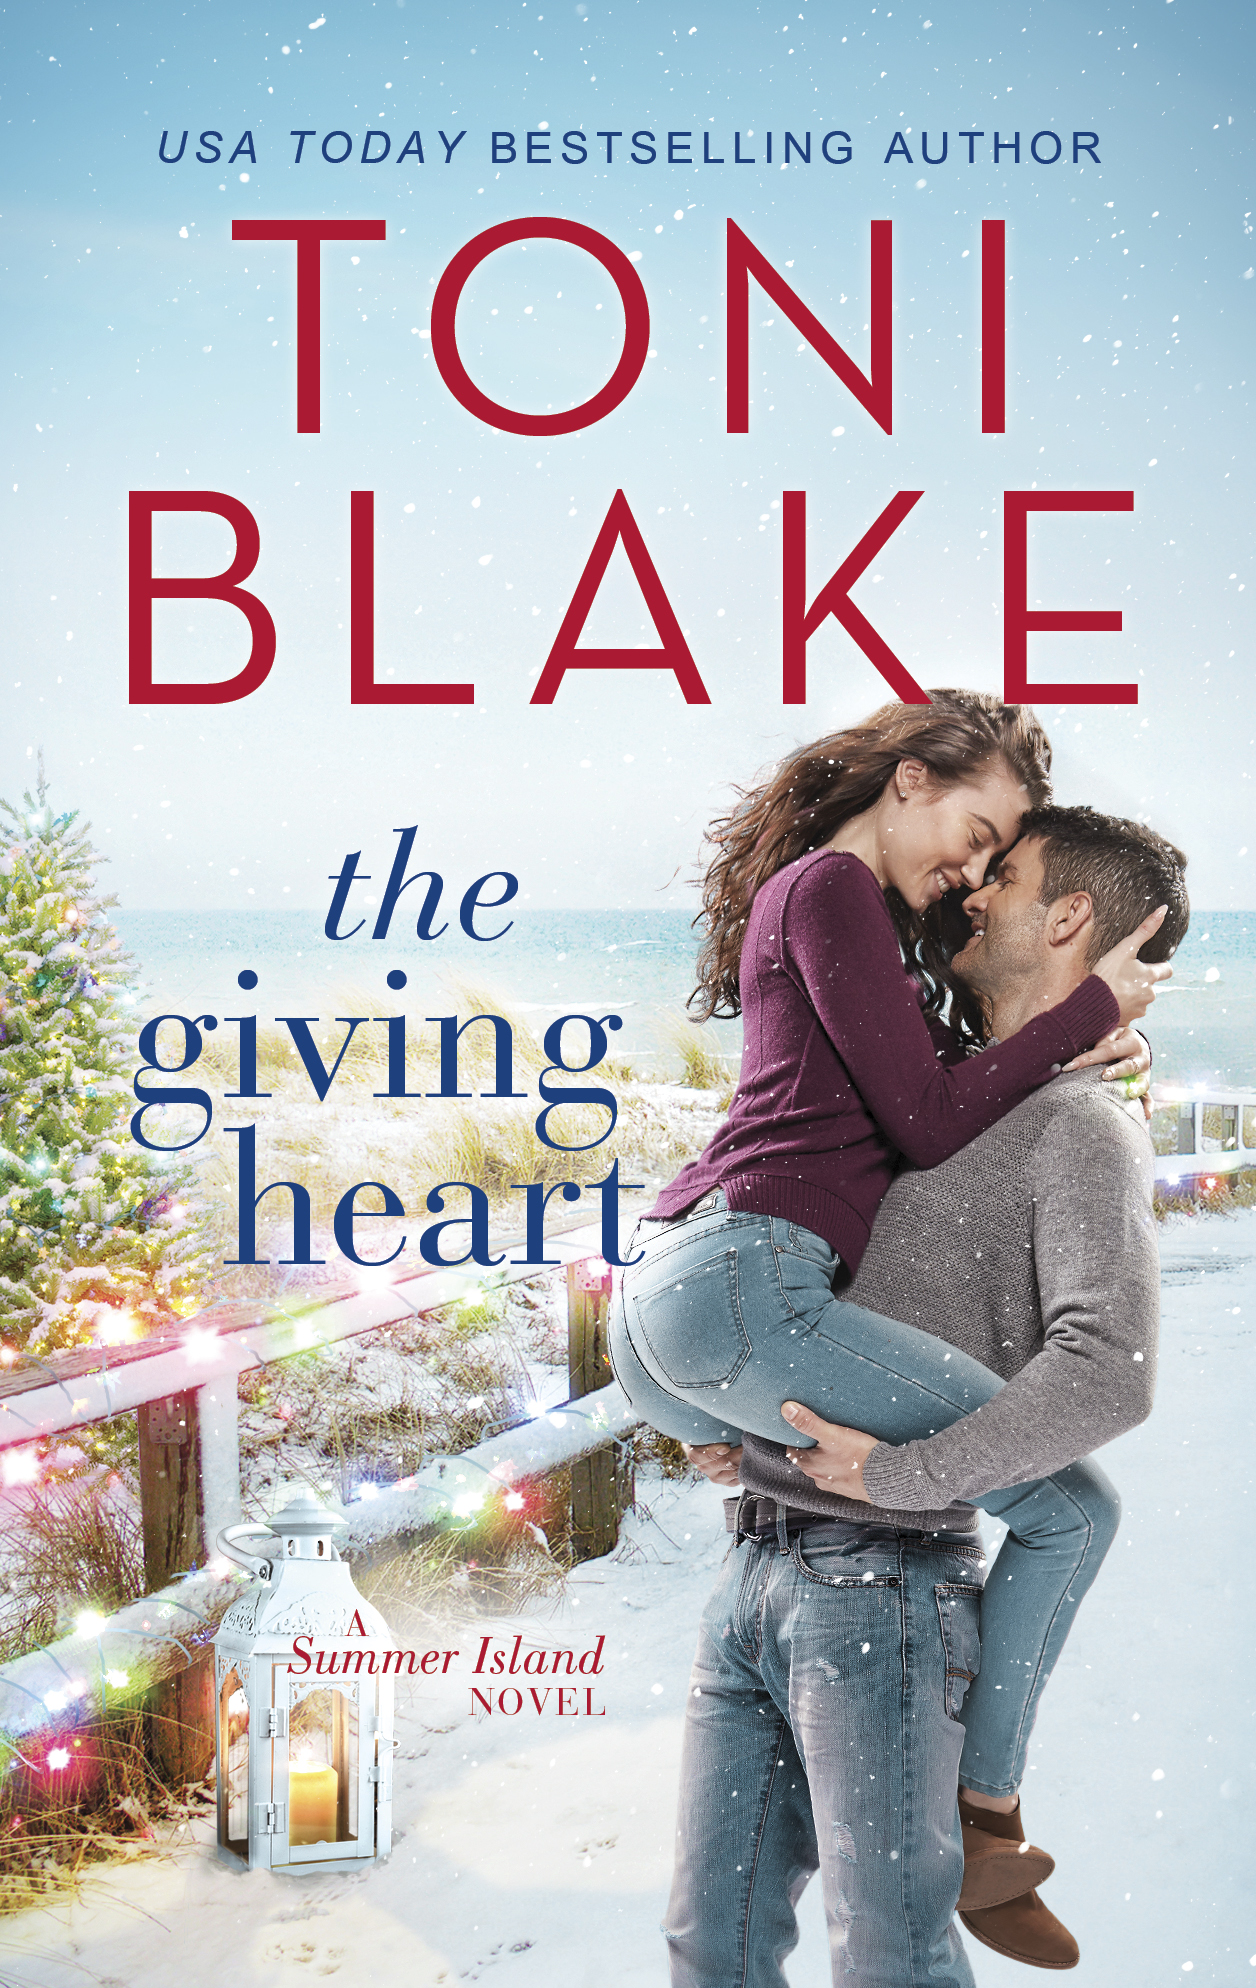 The Giving Heart A Summer Island Christmas Novel, Book 2 October 29, 2019